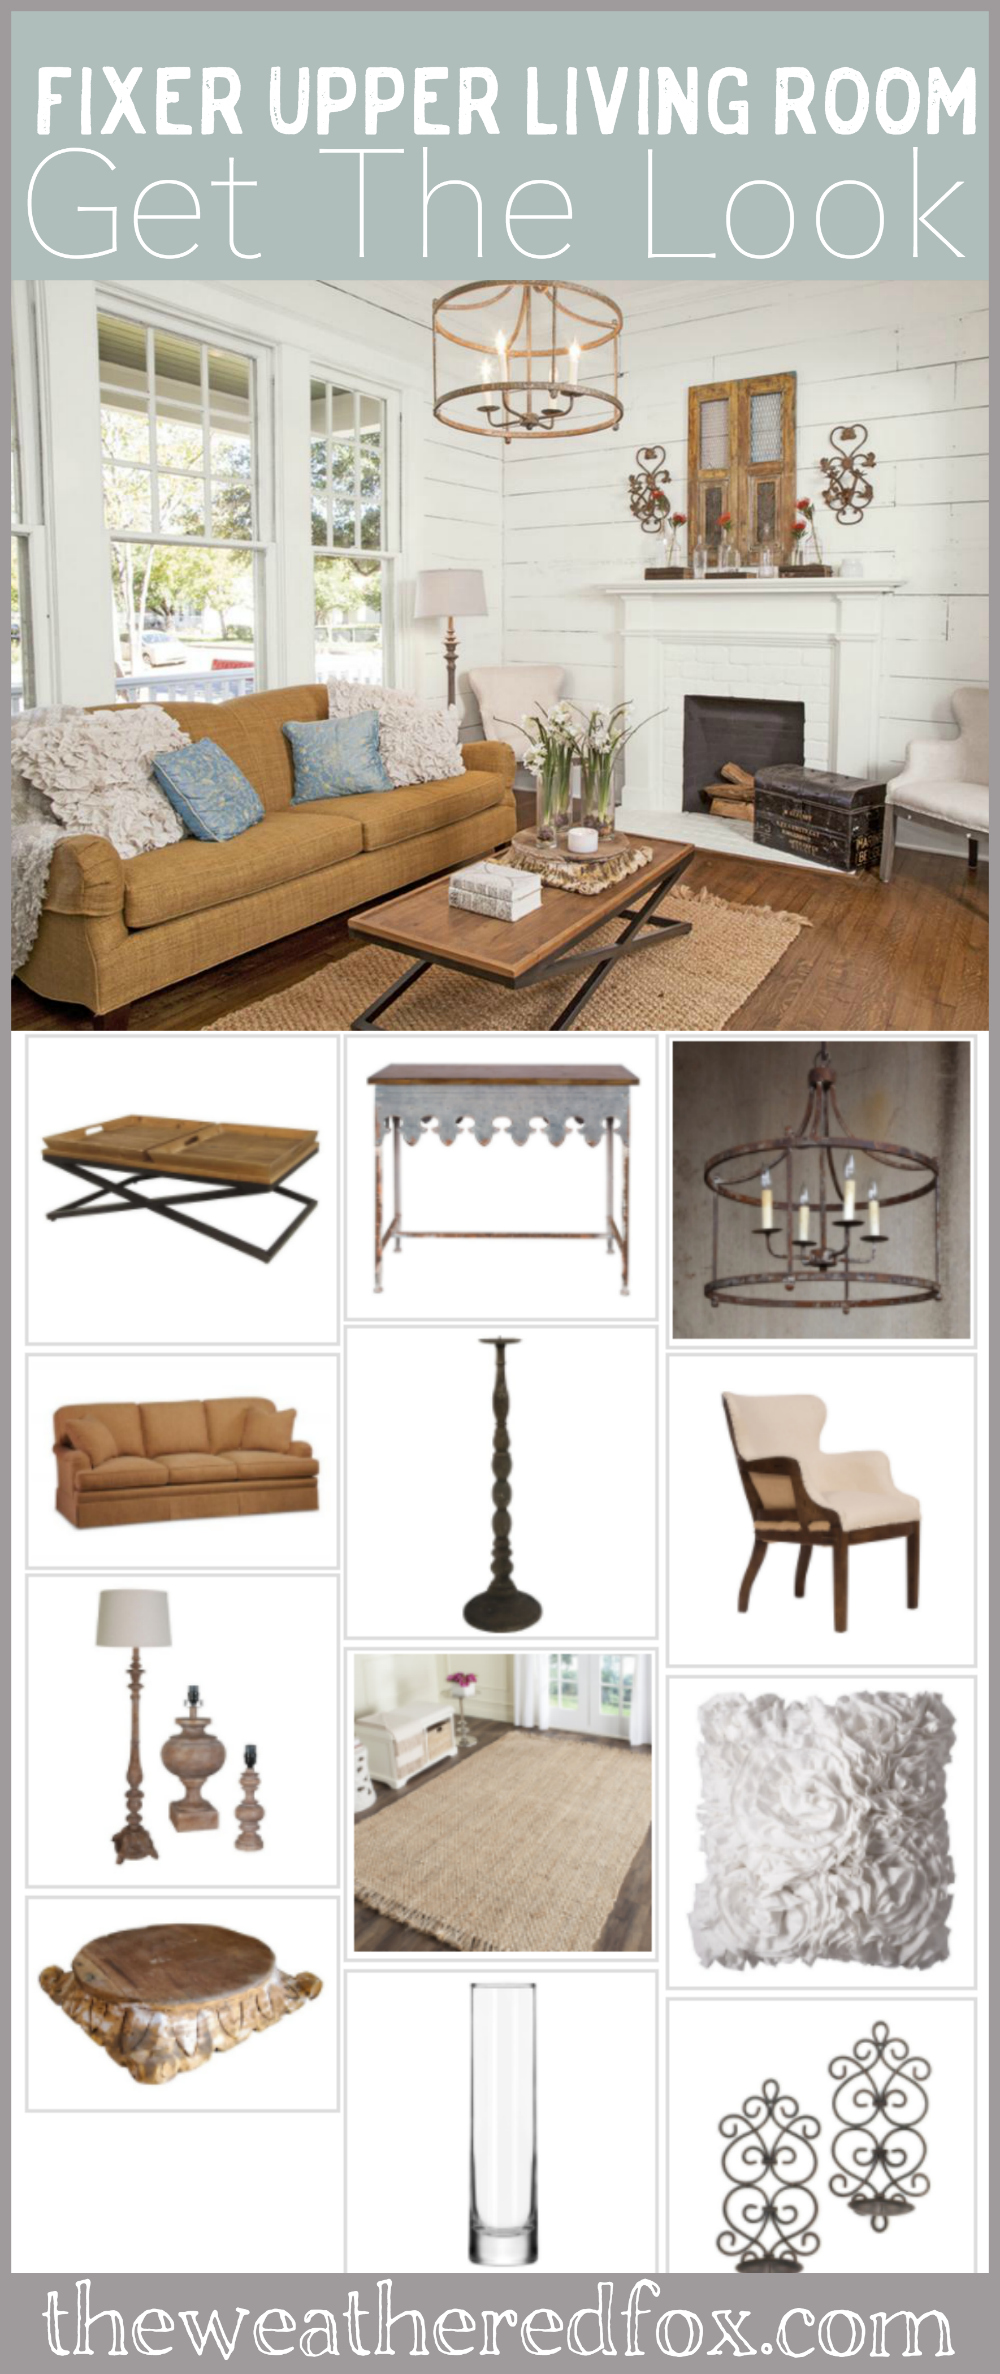 Fixer upper season 1 episode 1 sitting room the for Upper living room designs